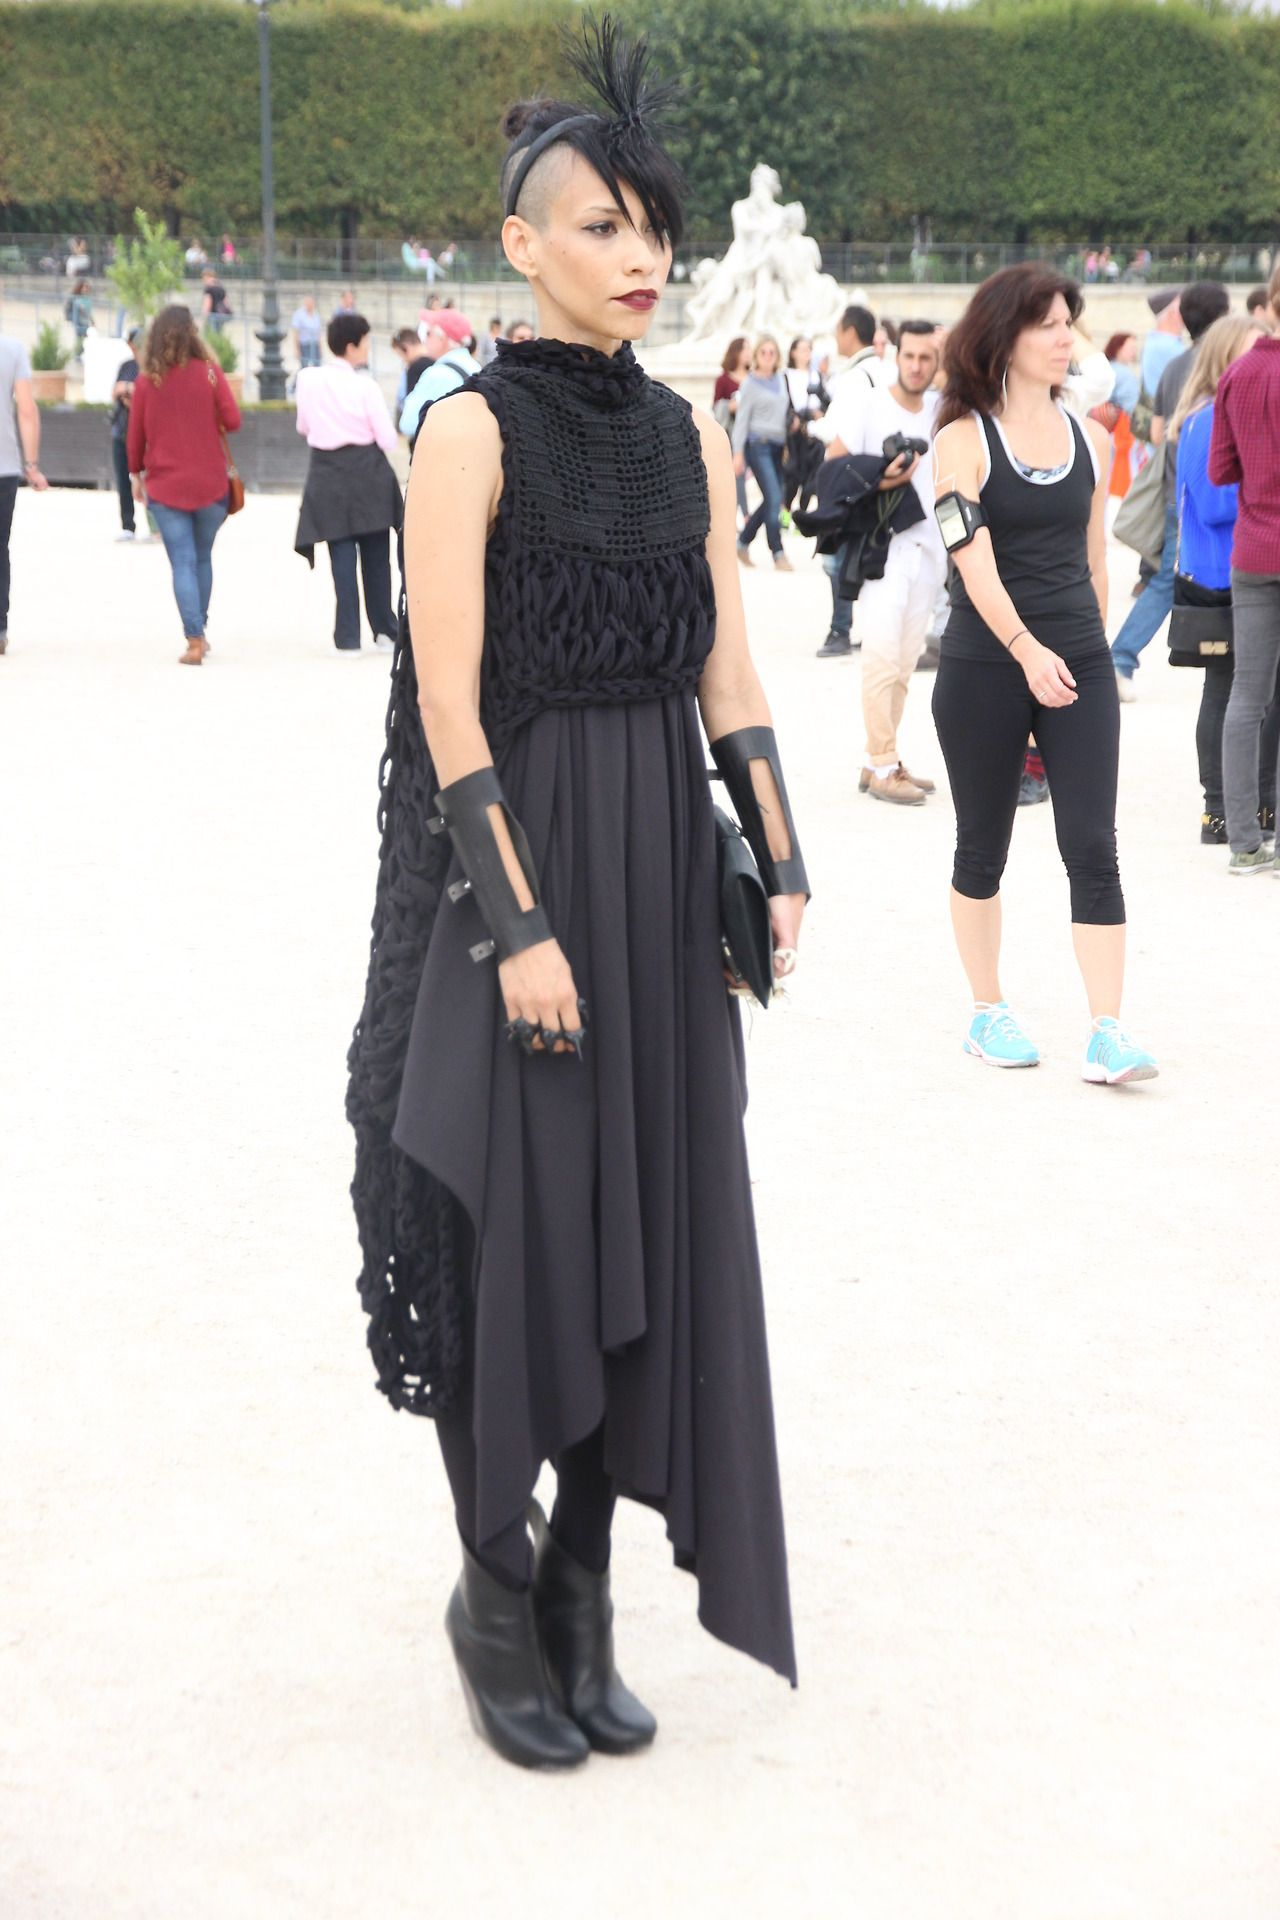 Lily Gatins during Paris Fashion Week by Paris Street Style. Dress by Area Barbara Bologna